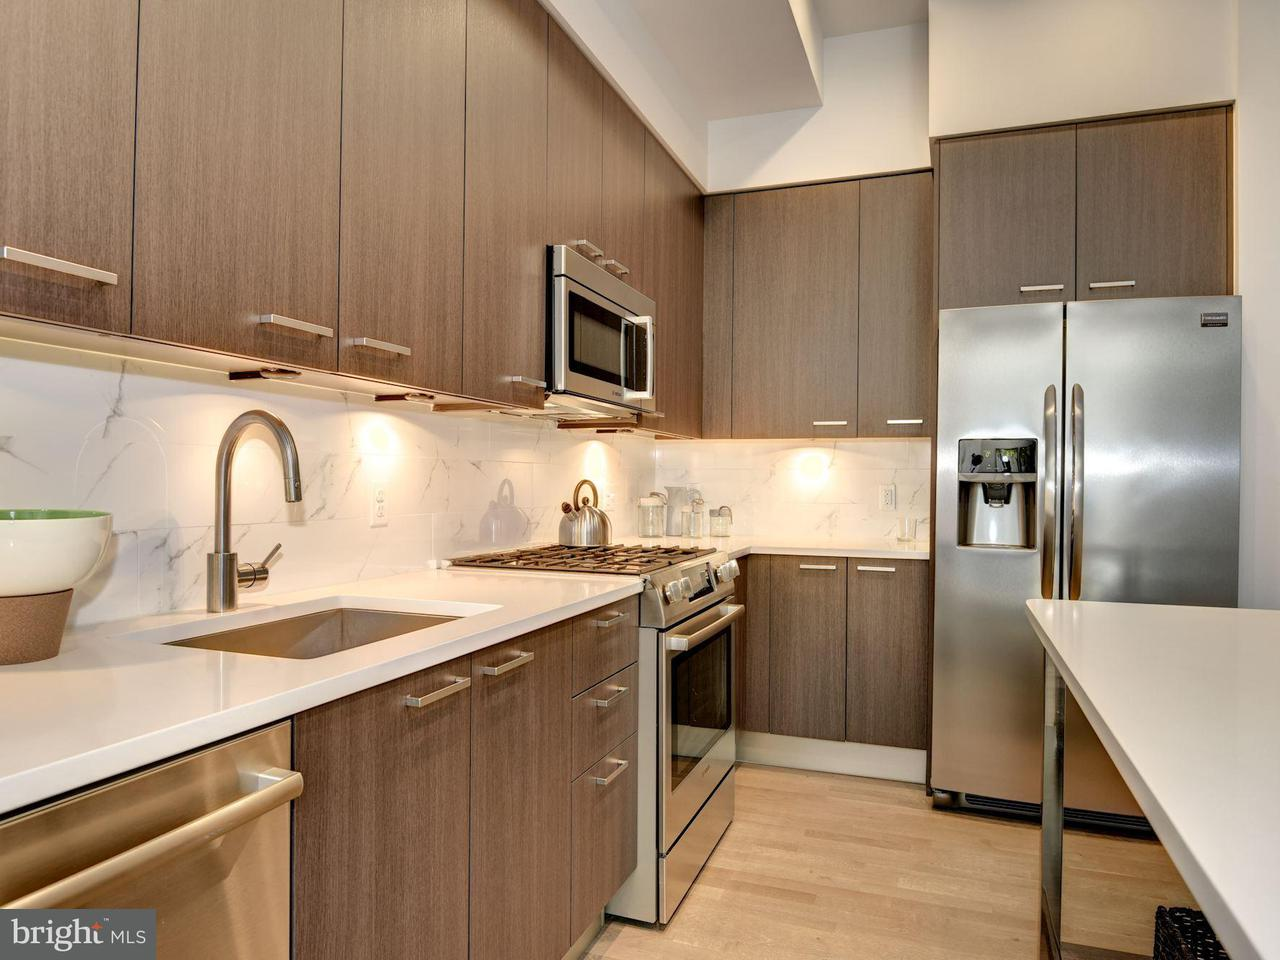 Additional photo for property listing at 525 Water St Sw #431 525 Water St Sw #431 Washington, District Of Columbia 20024 Verenigde Staten